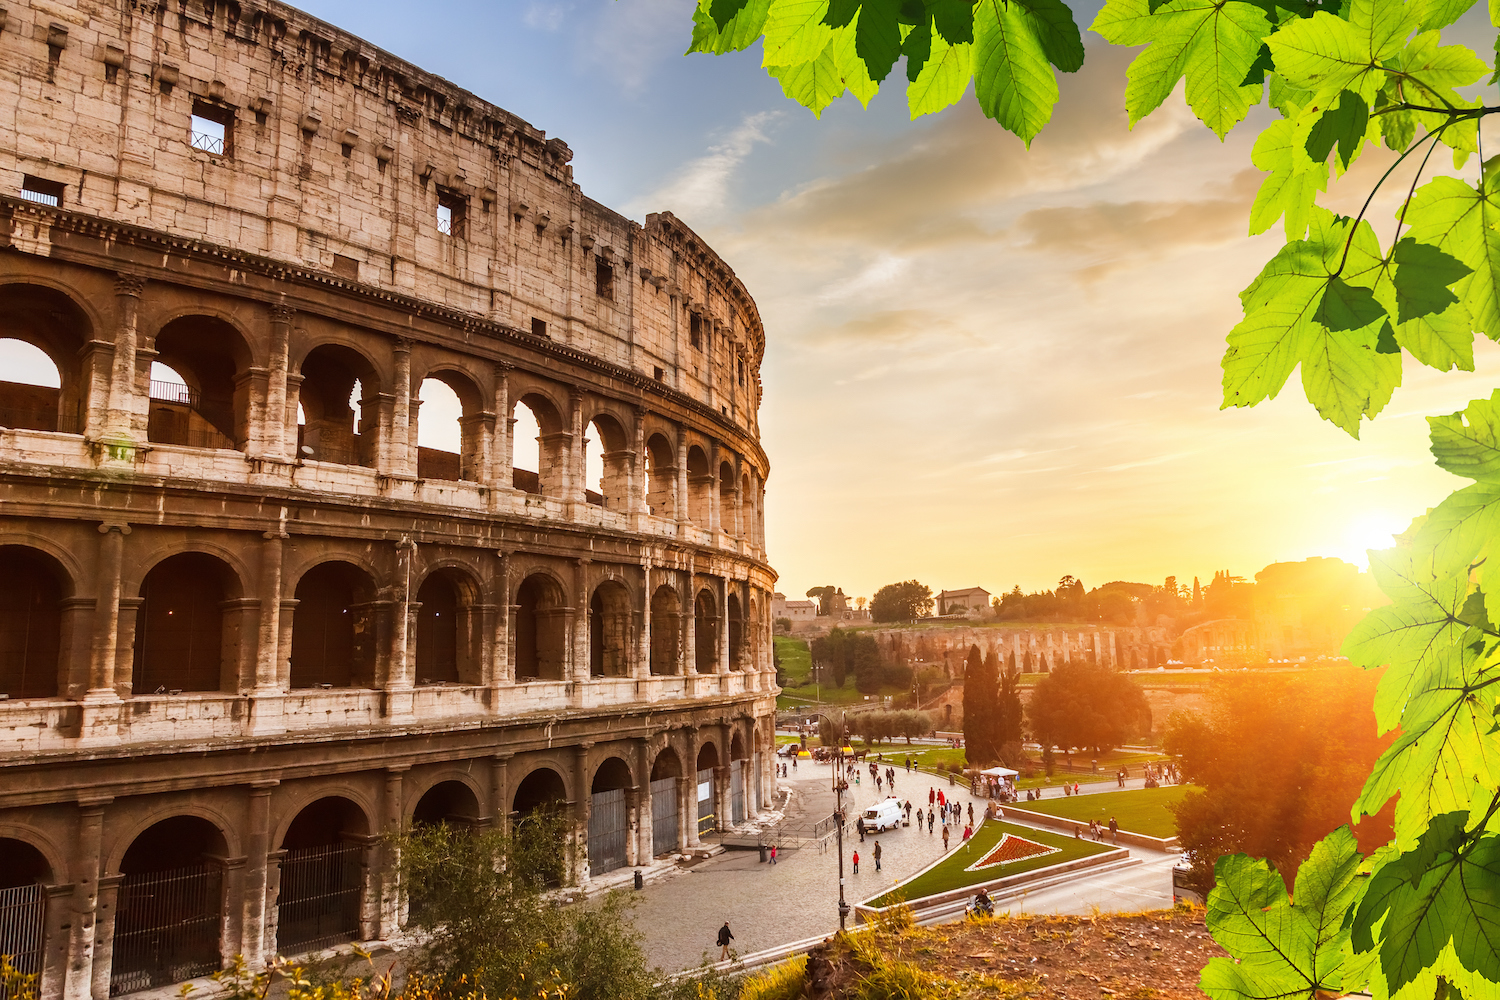 the Colosseum in Rome with beautiful lighting